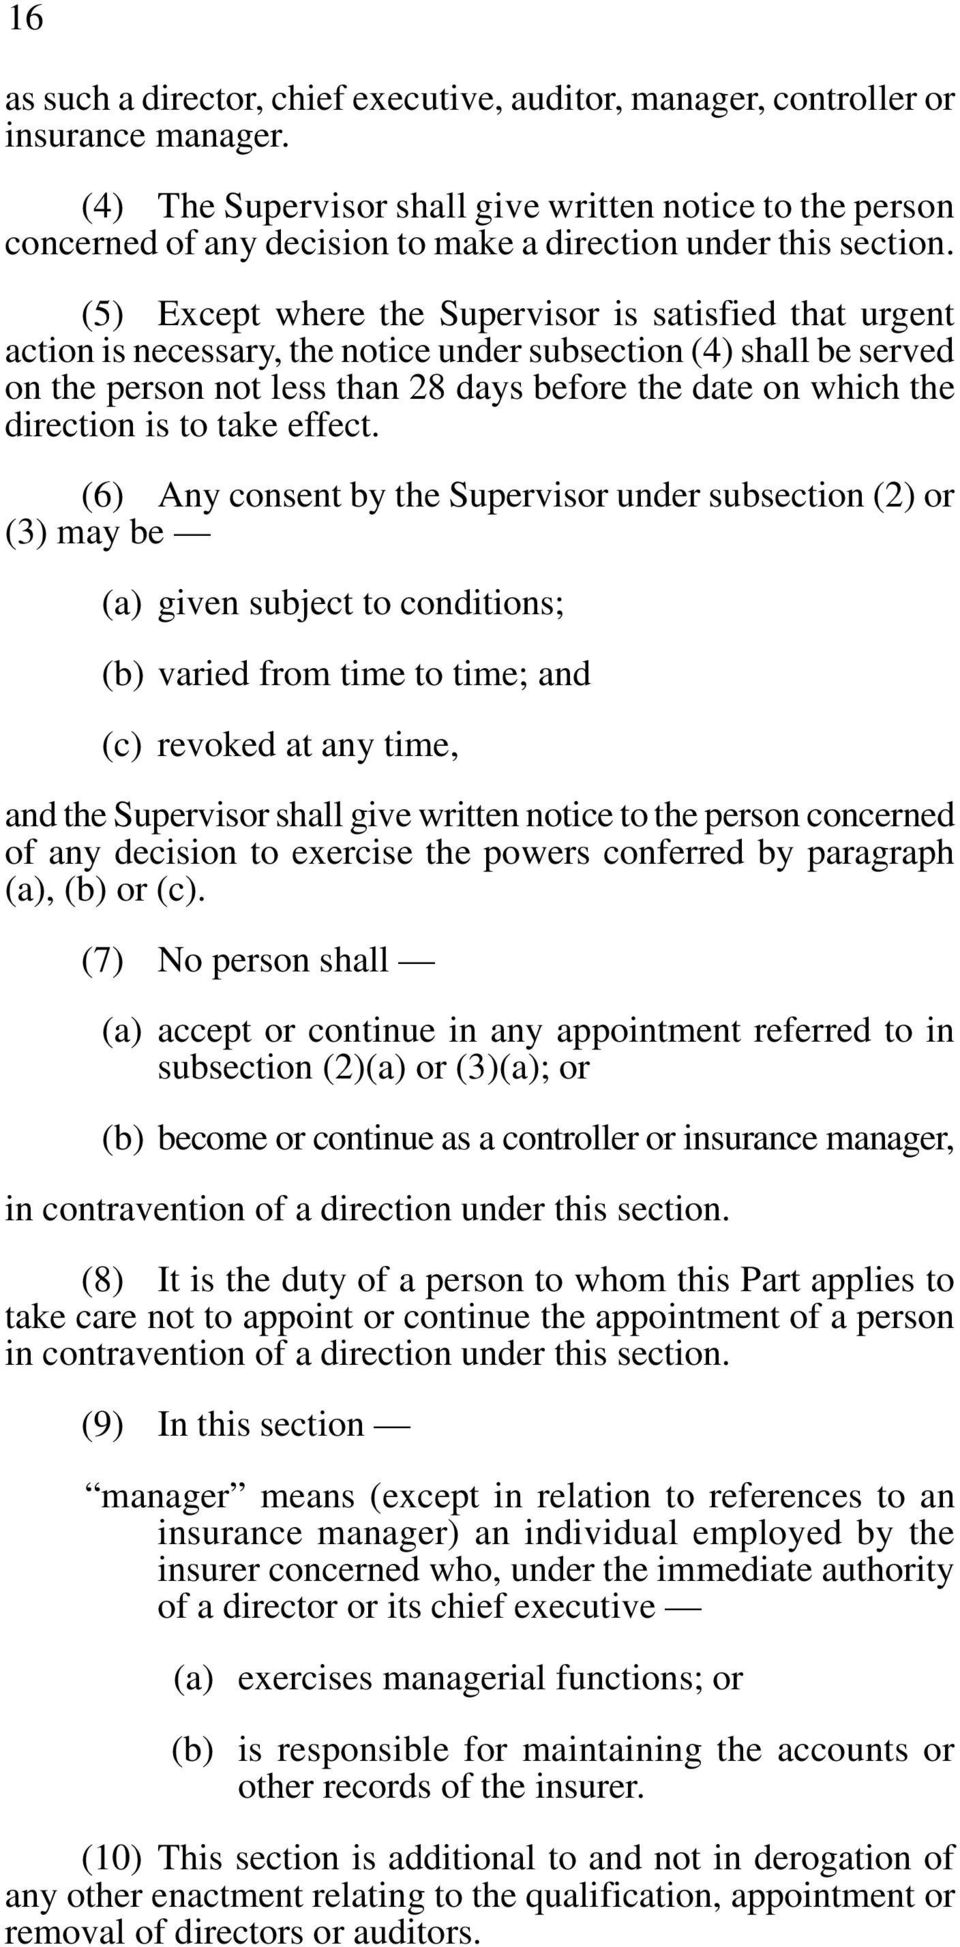 (5) Except where the Supervisor is satisfied that urgent action is necessary, the notice under subsection (4) shall be served on the person not less than 28 days before the date on which the